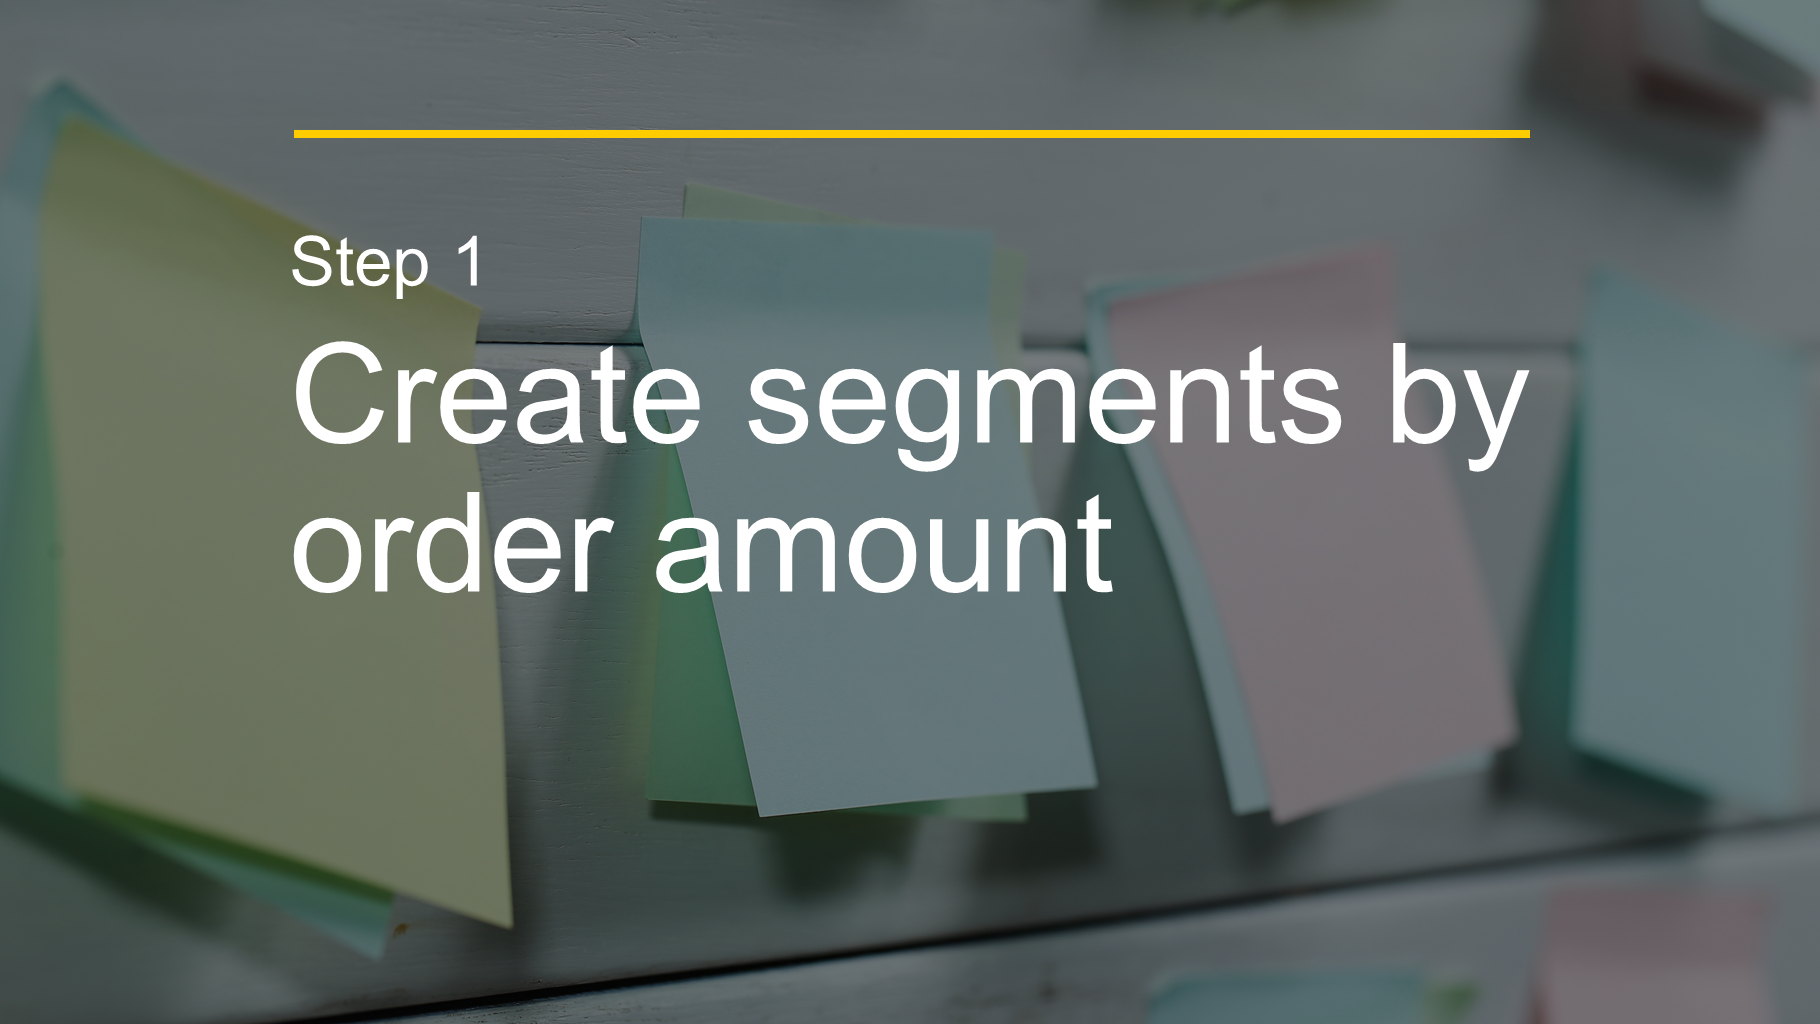 Step 1 Create segments by order amount